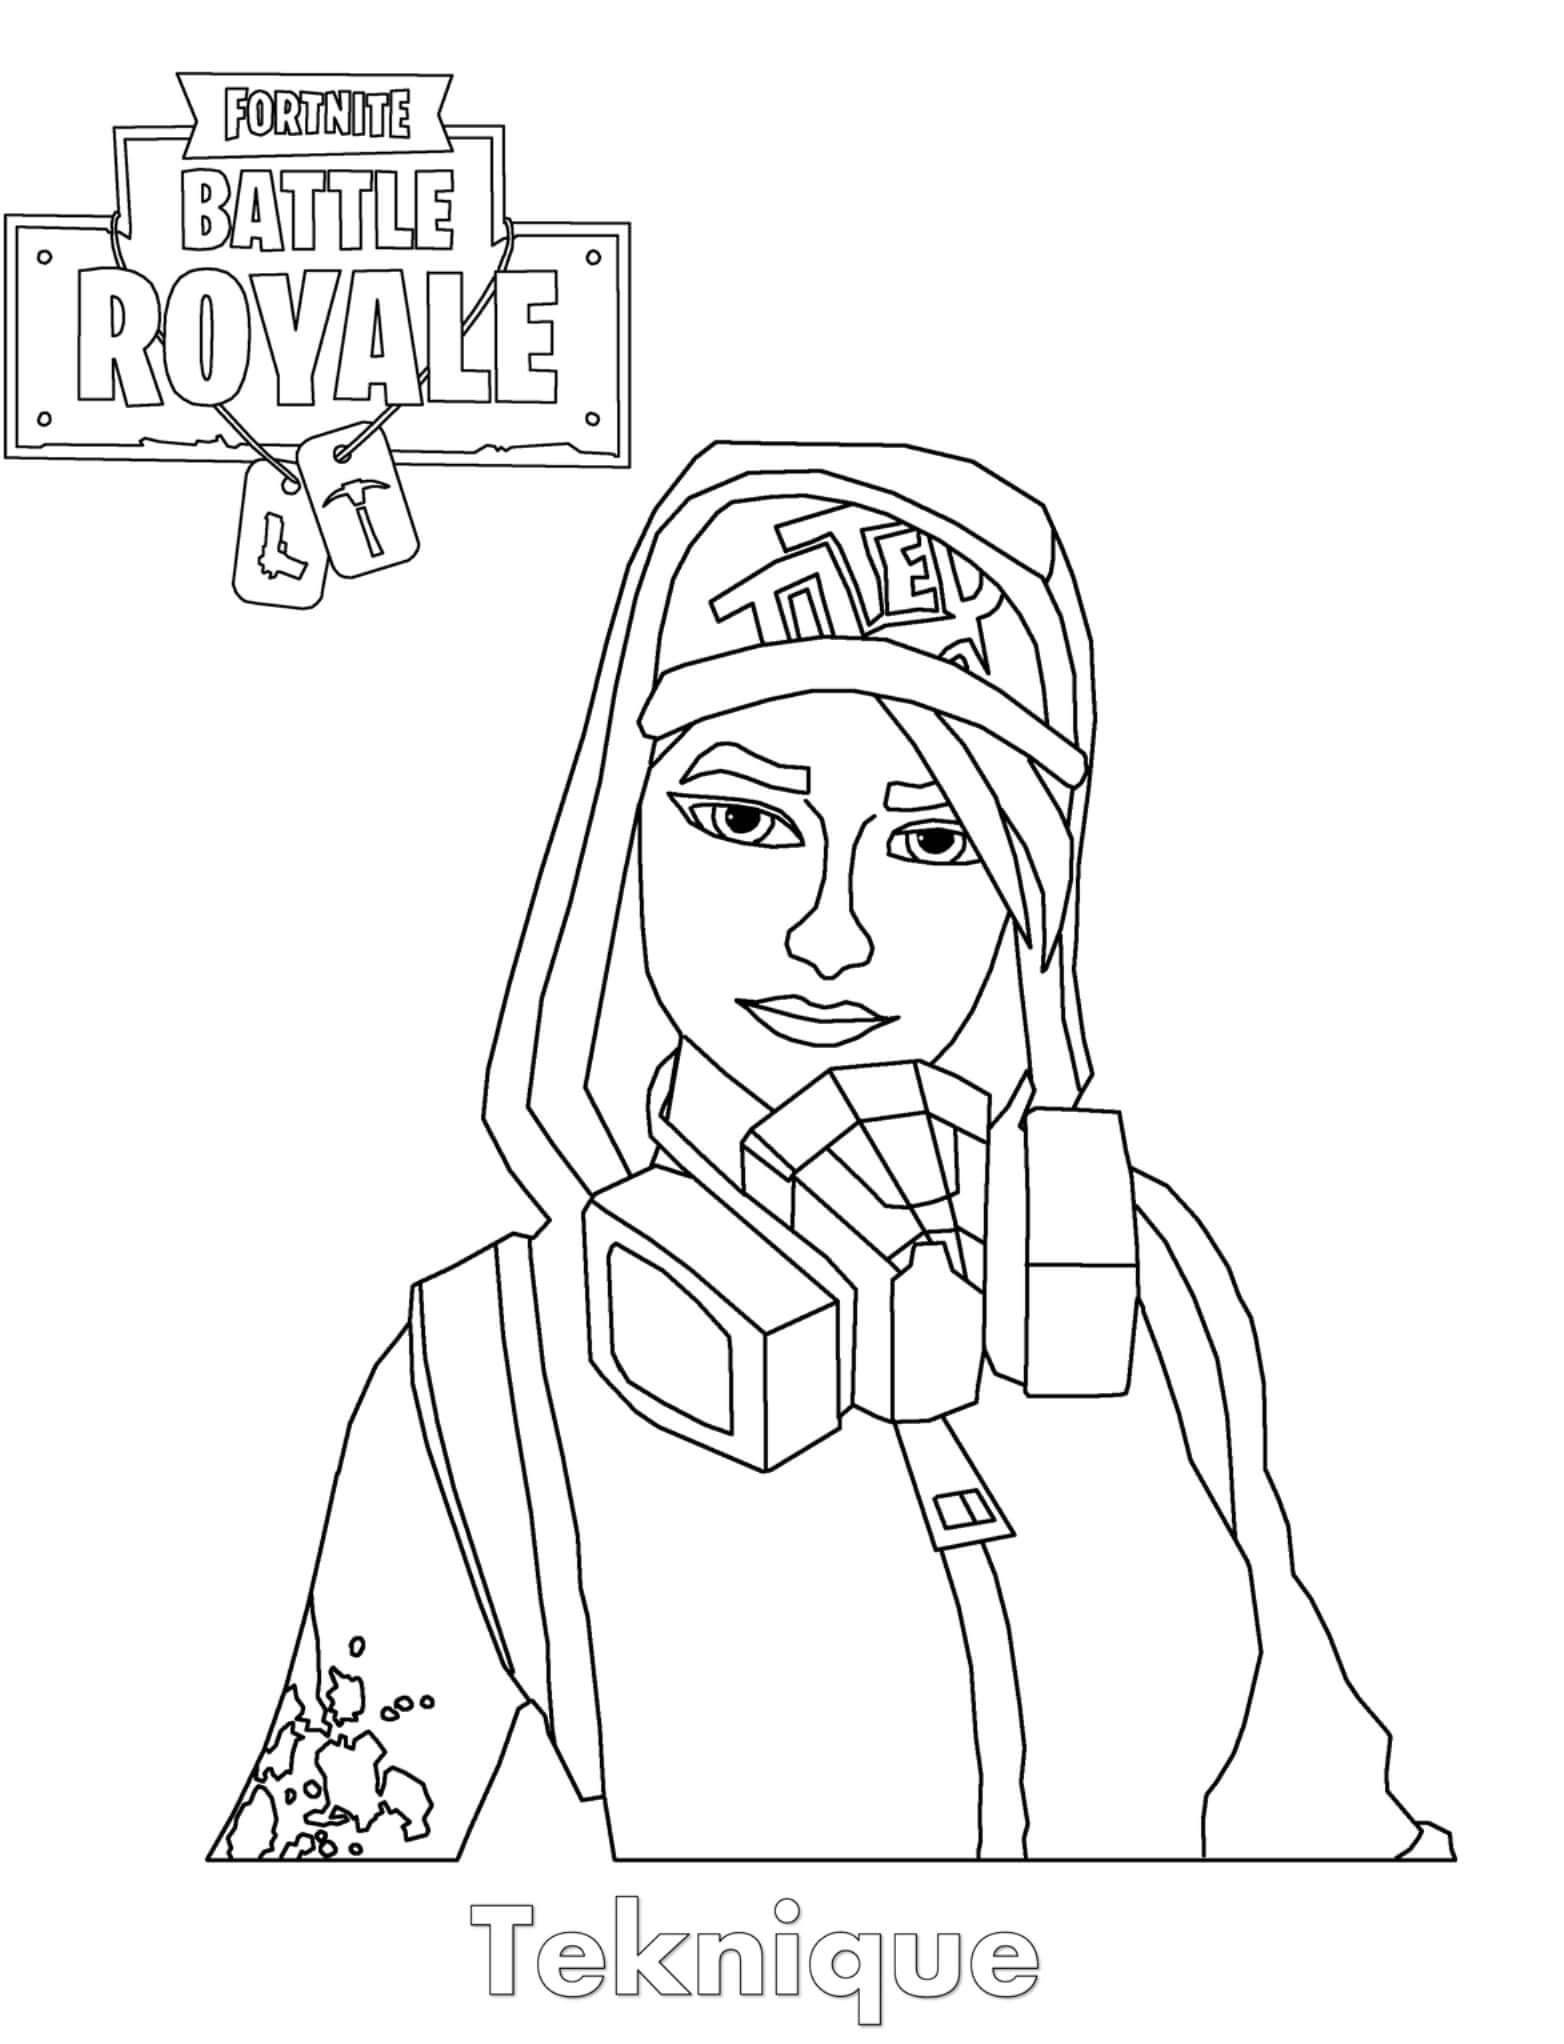 Free Easy Fortnite Skin Coloring Pages Teknique Online printable